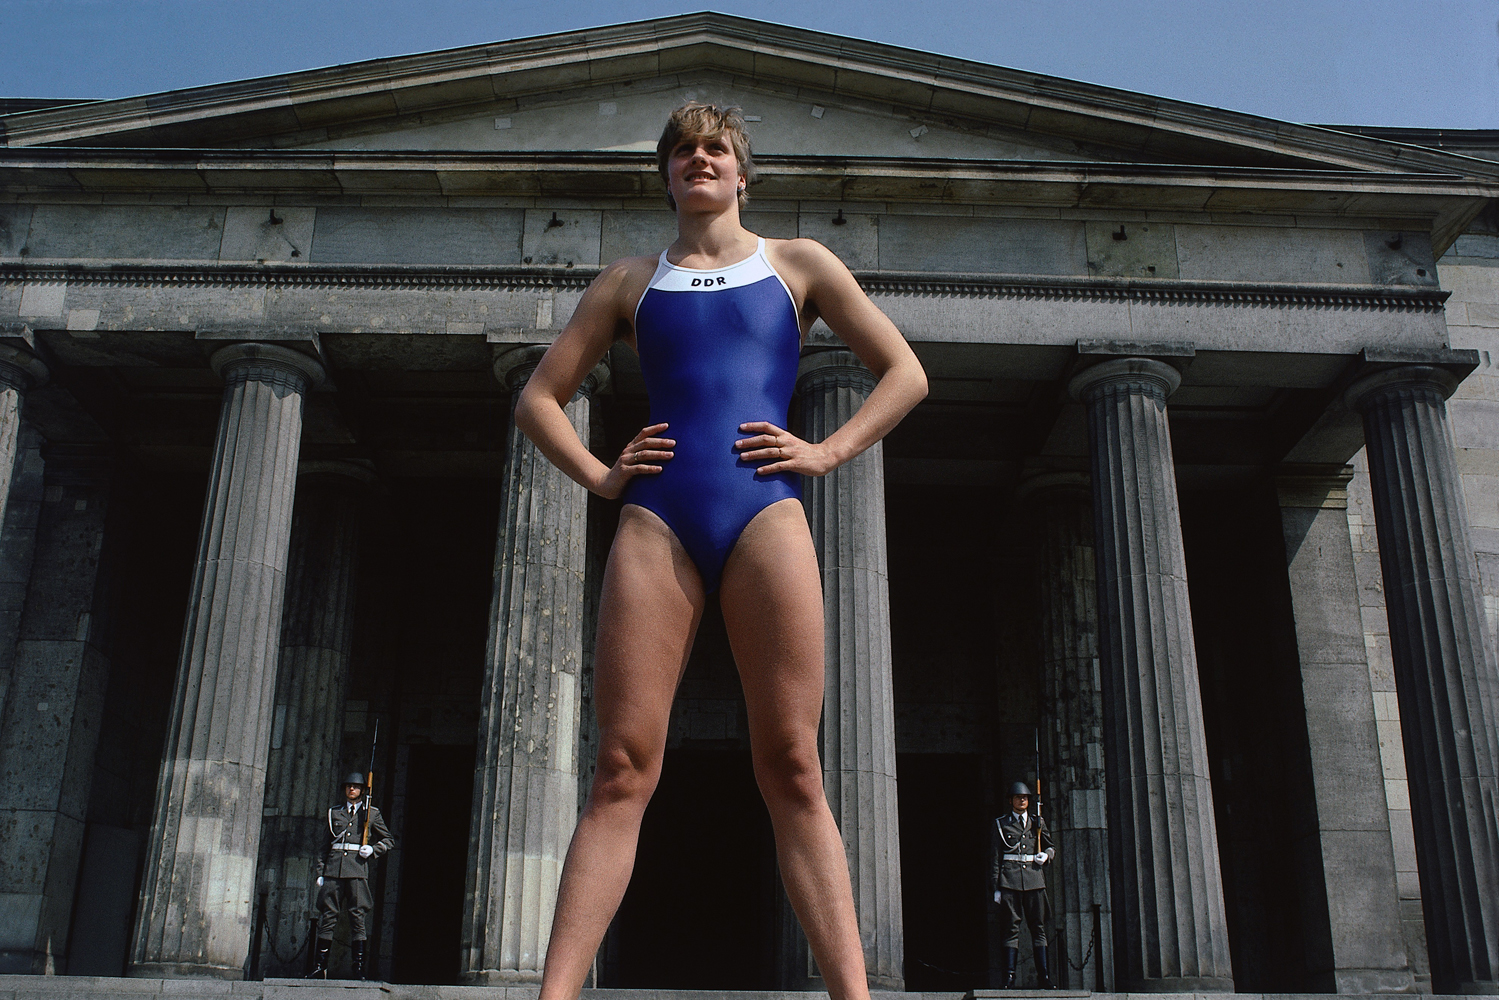 Kristin Otto poses in front of the Tomb of the Unknown Soldier in East Berlin.